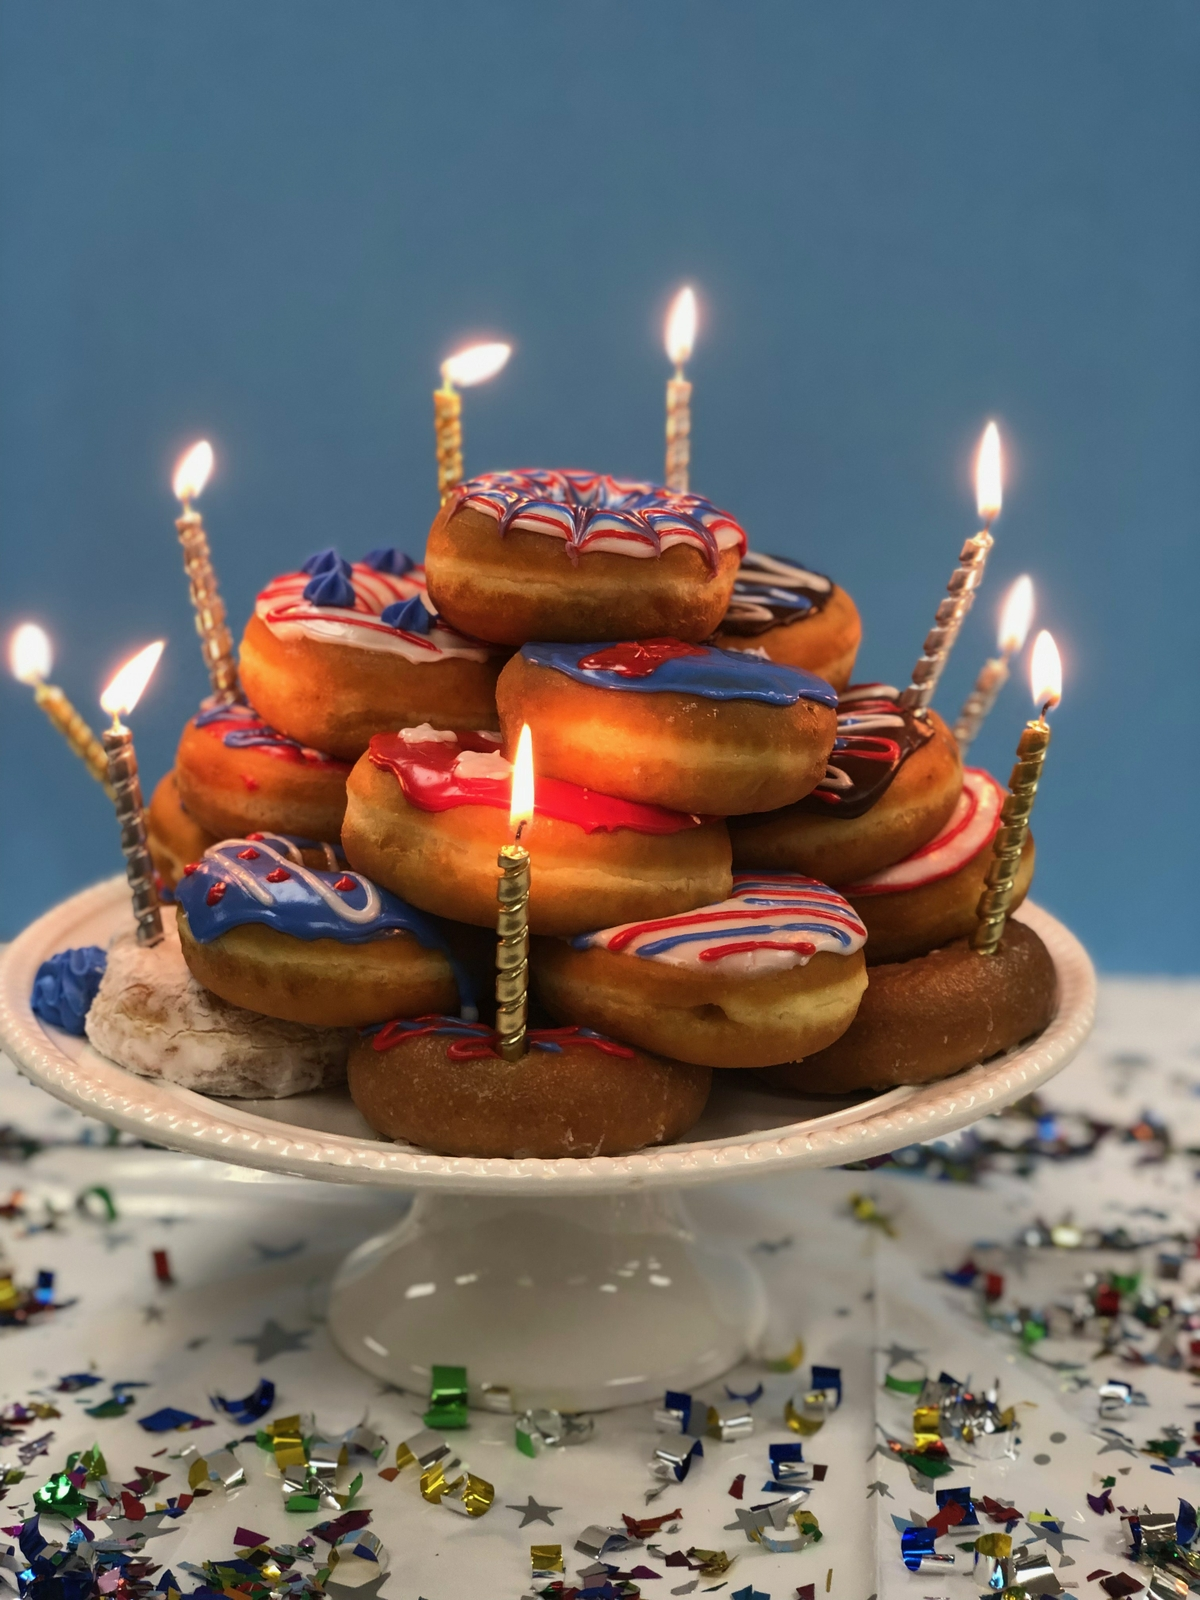 Enjoyable Celebrate The Fourth Of July With This Celebration Donut Cake Personalised Birthday Cards Paralily Jamesorg